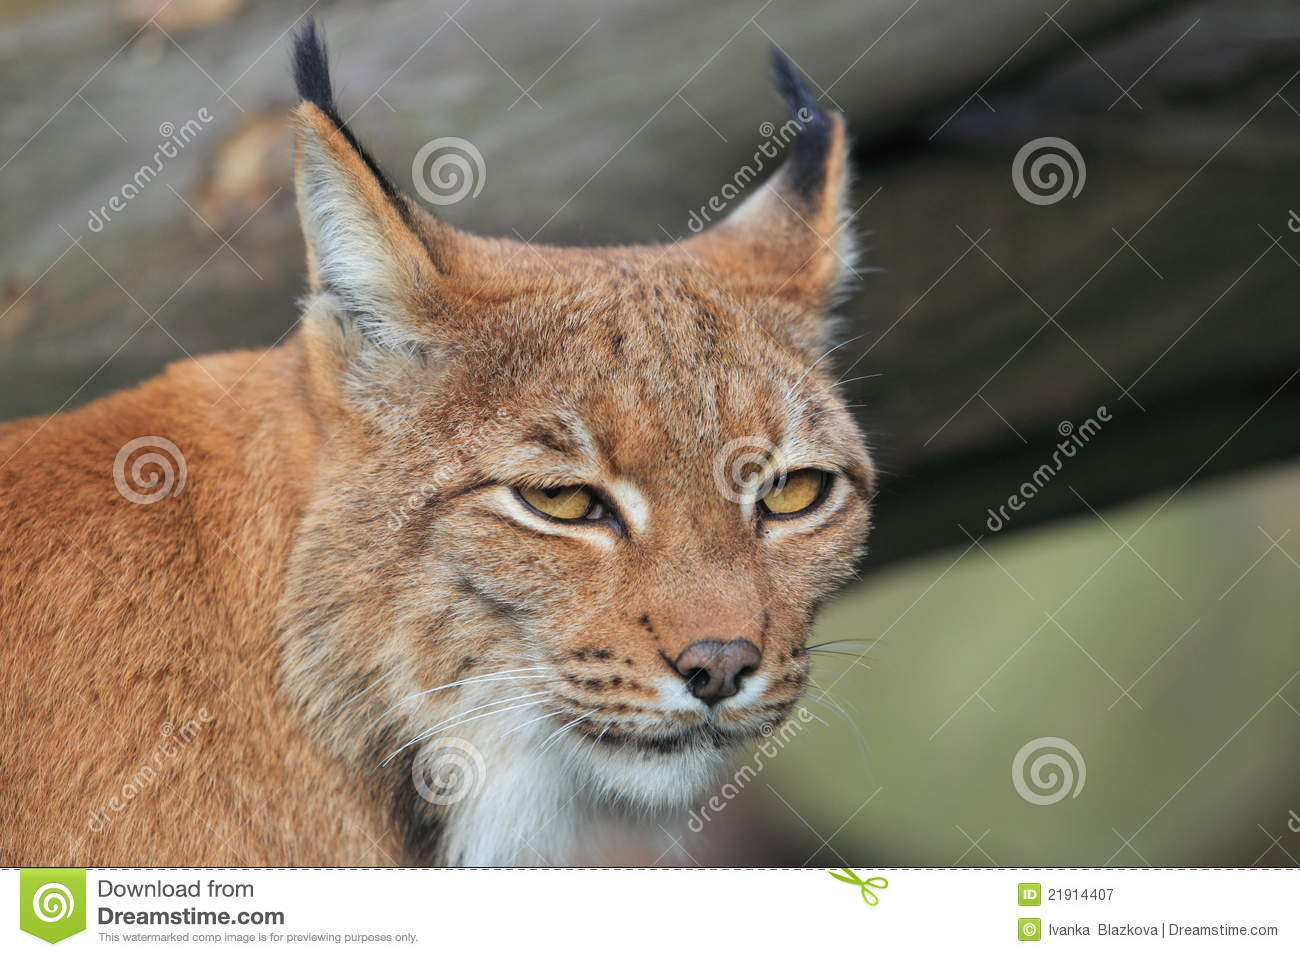 A role for LYNX2 in anxiety-related behavior